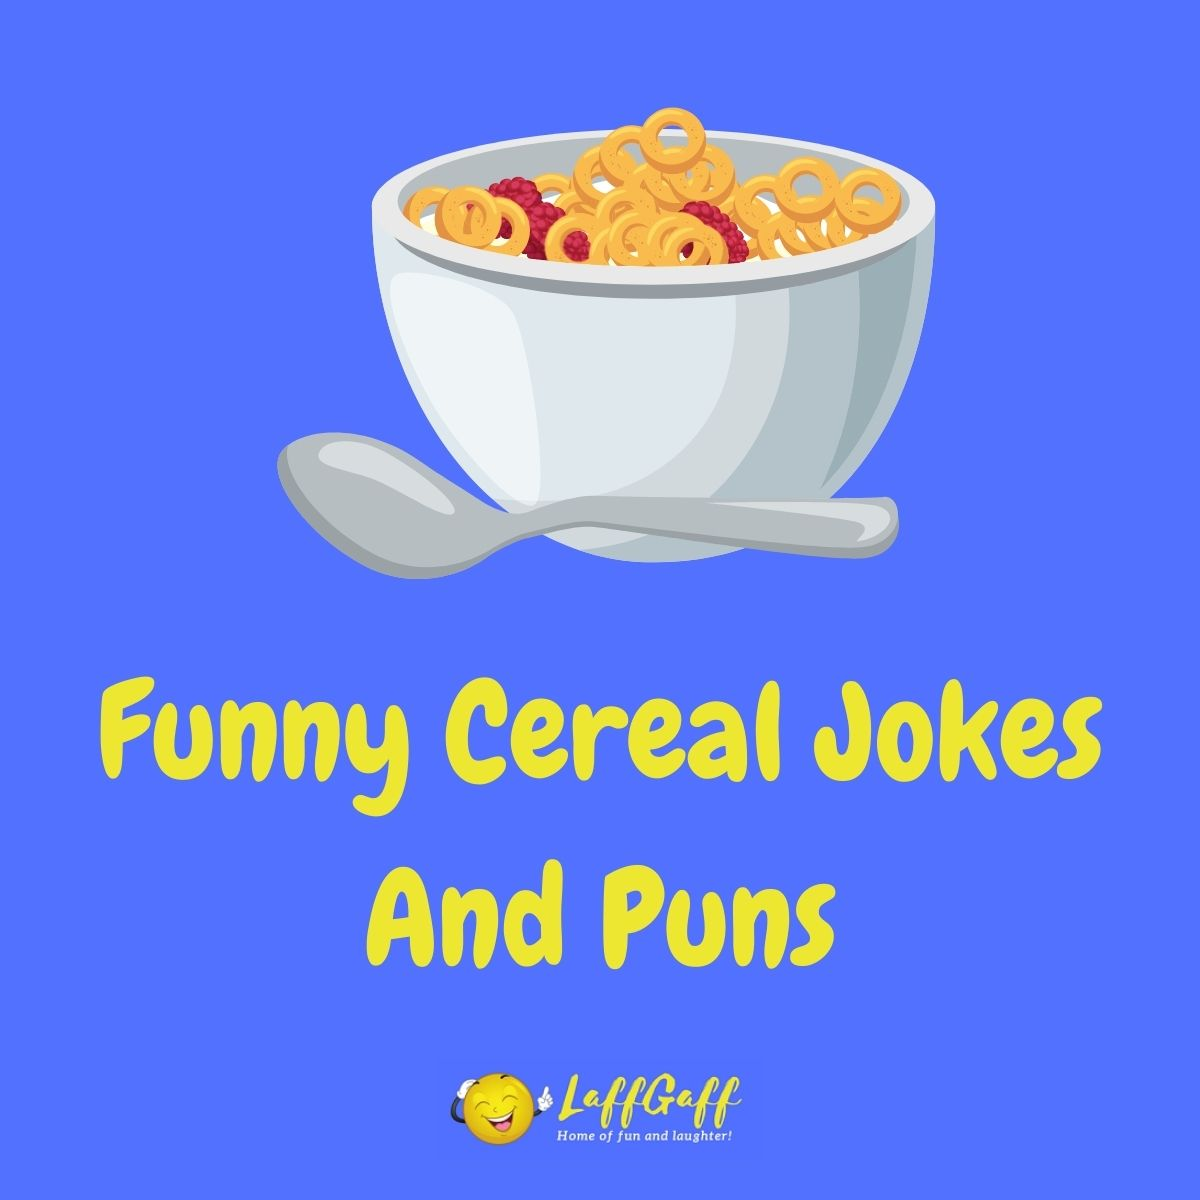 Featured image for a page of funny cereal jokes and puns.